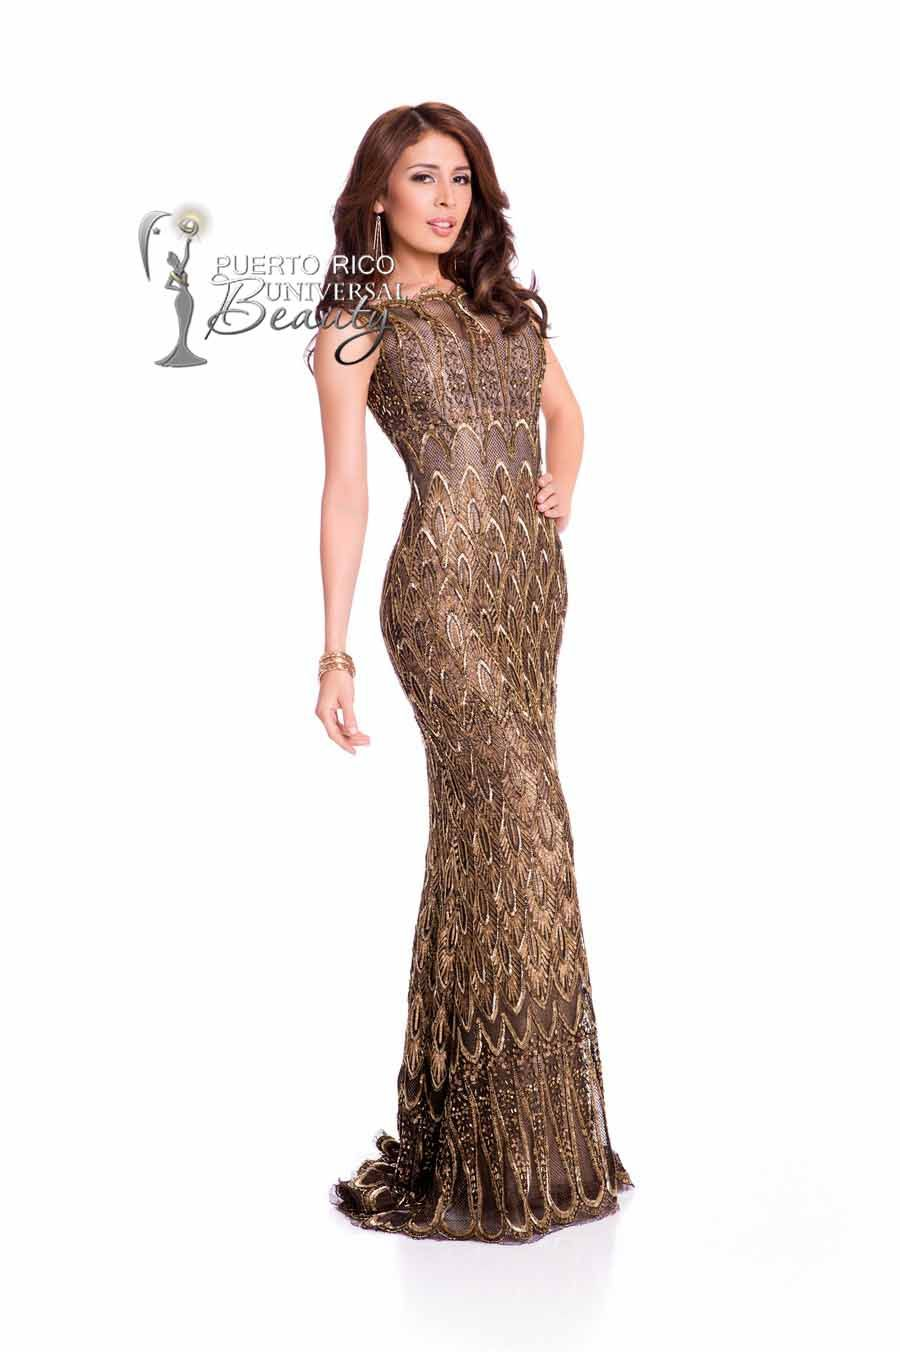 MISS UNIVERSE 2015 :: EVENING GOWN | Iroshka Elvir, Miss Universe ...